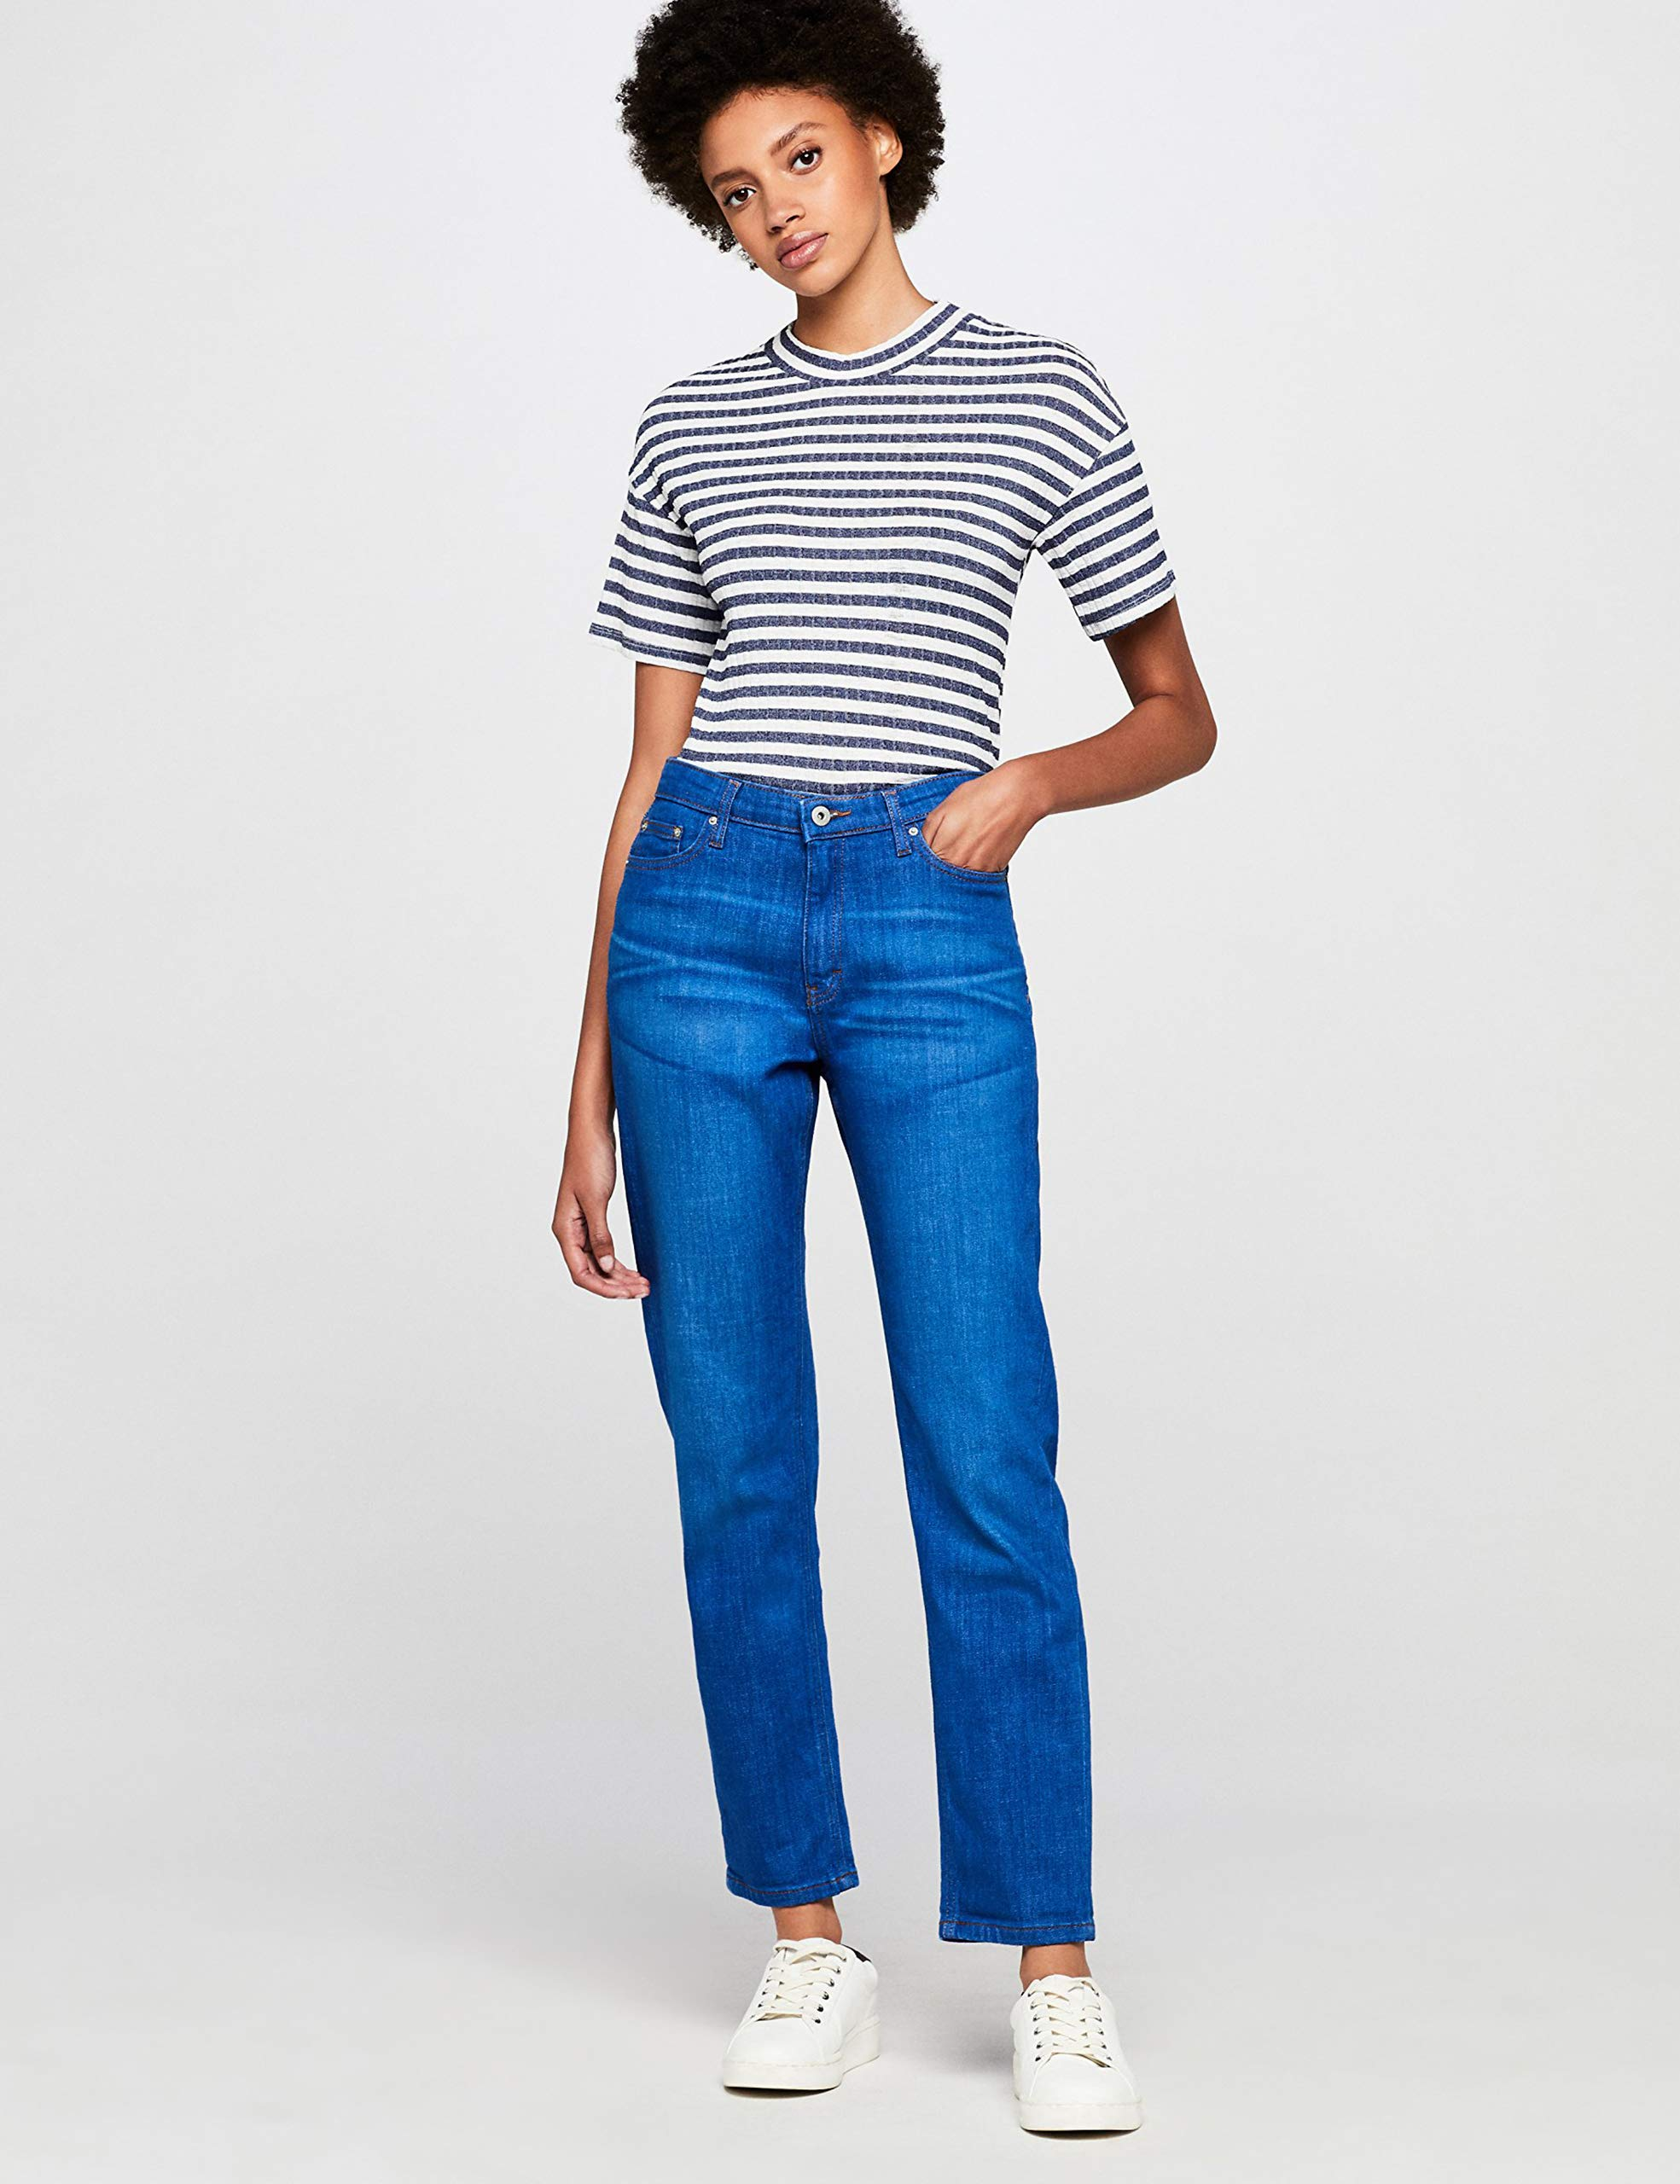 Find boyfriend jeans for women